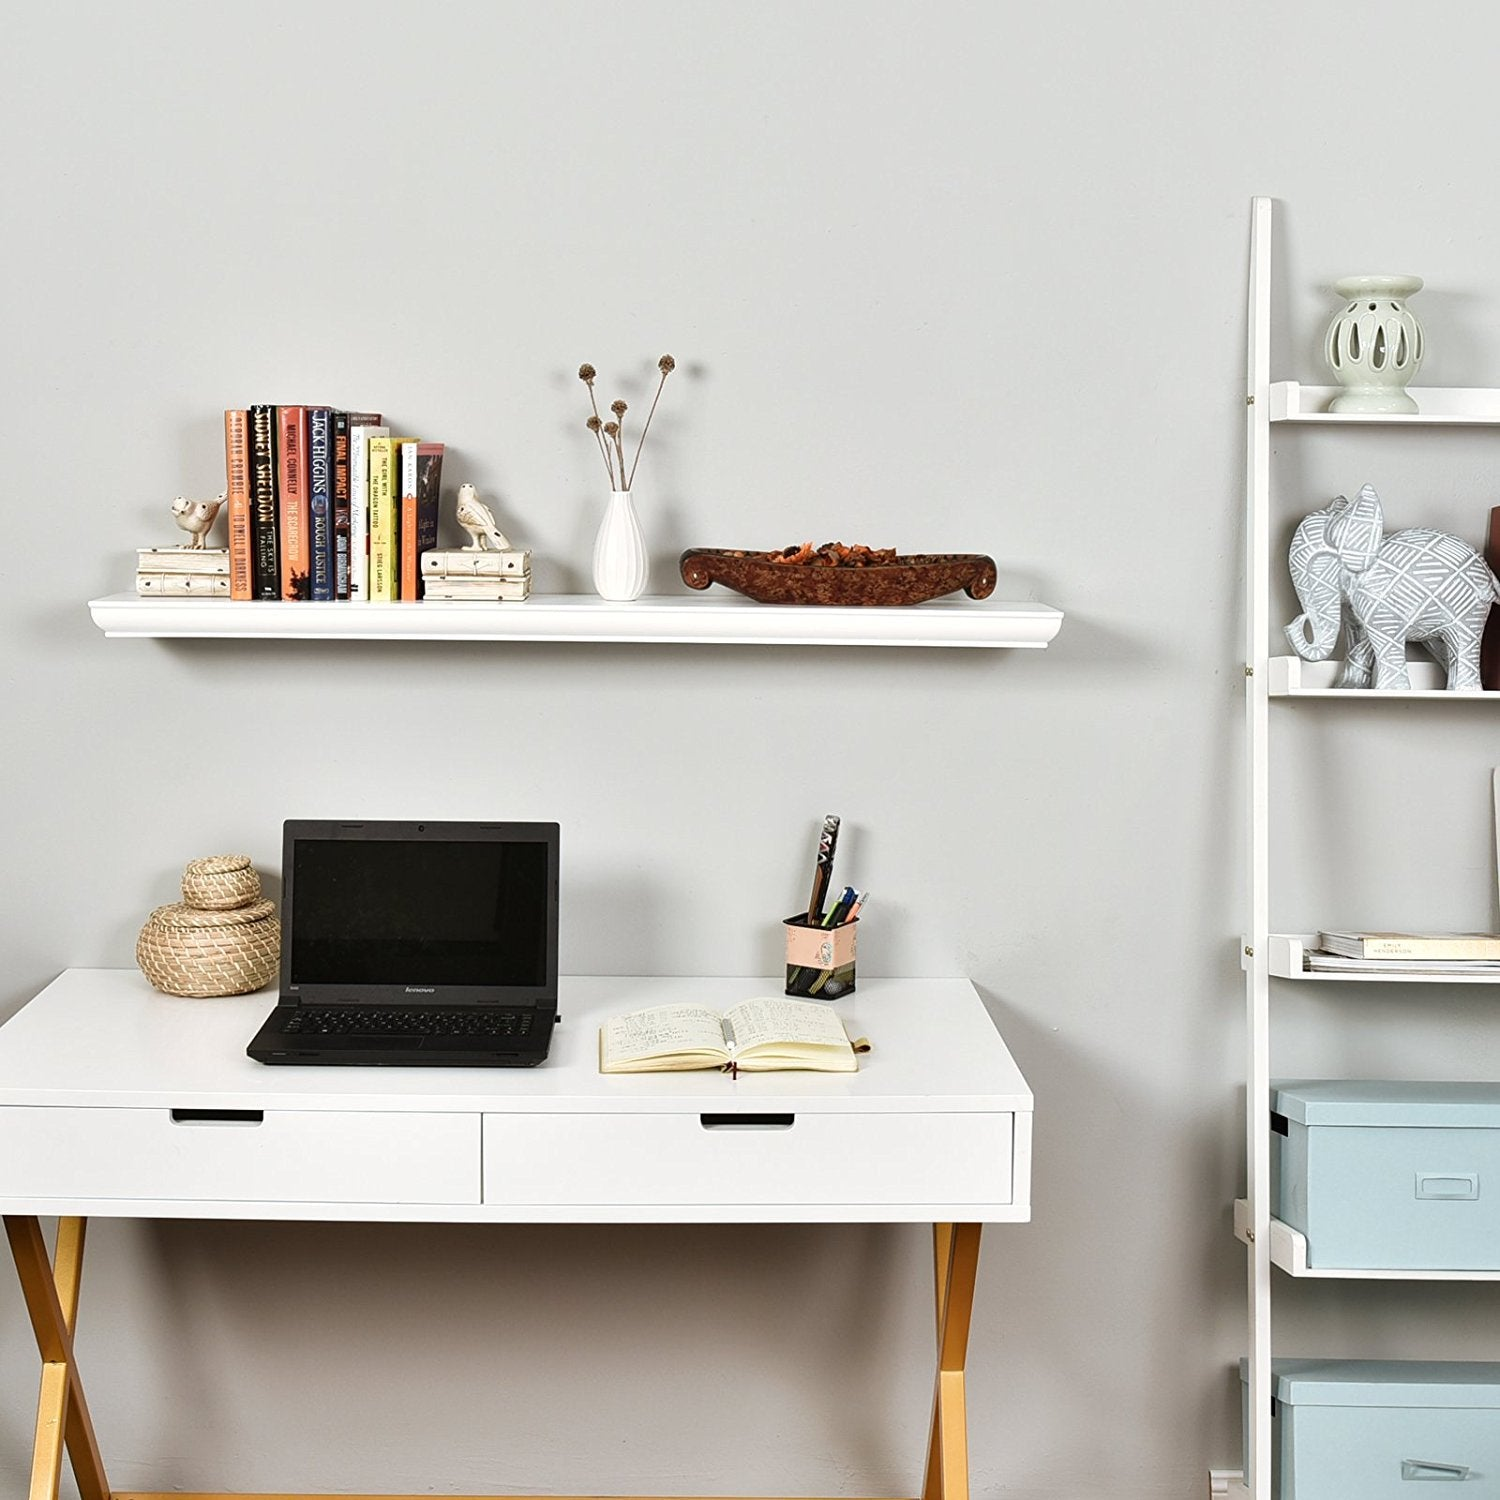 20 W  x 6 D x 1.5 T Inch Floating Wall Shelf in Black Espresso and White Finish